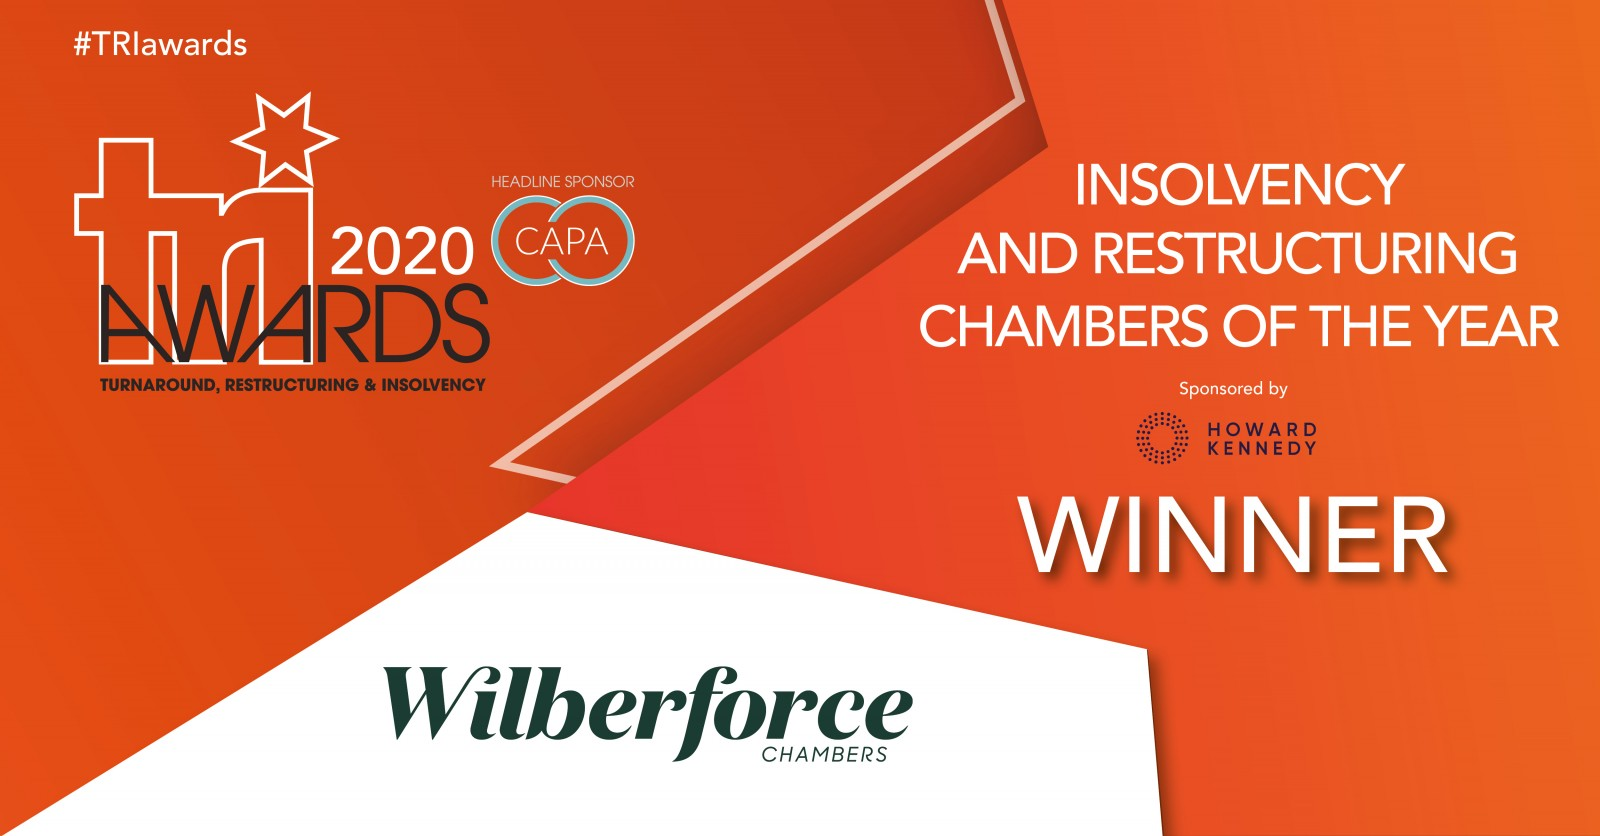 Insolvency & Restructuring Chambers of the Year at the TRI Awards 1